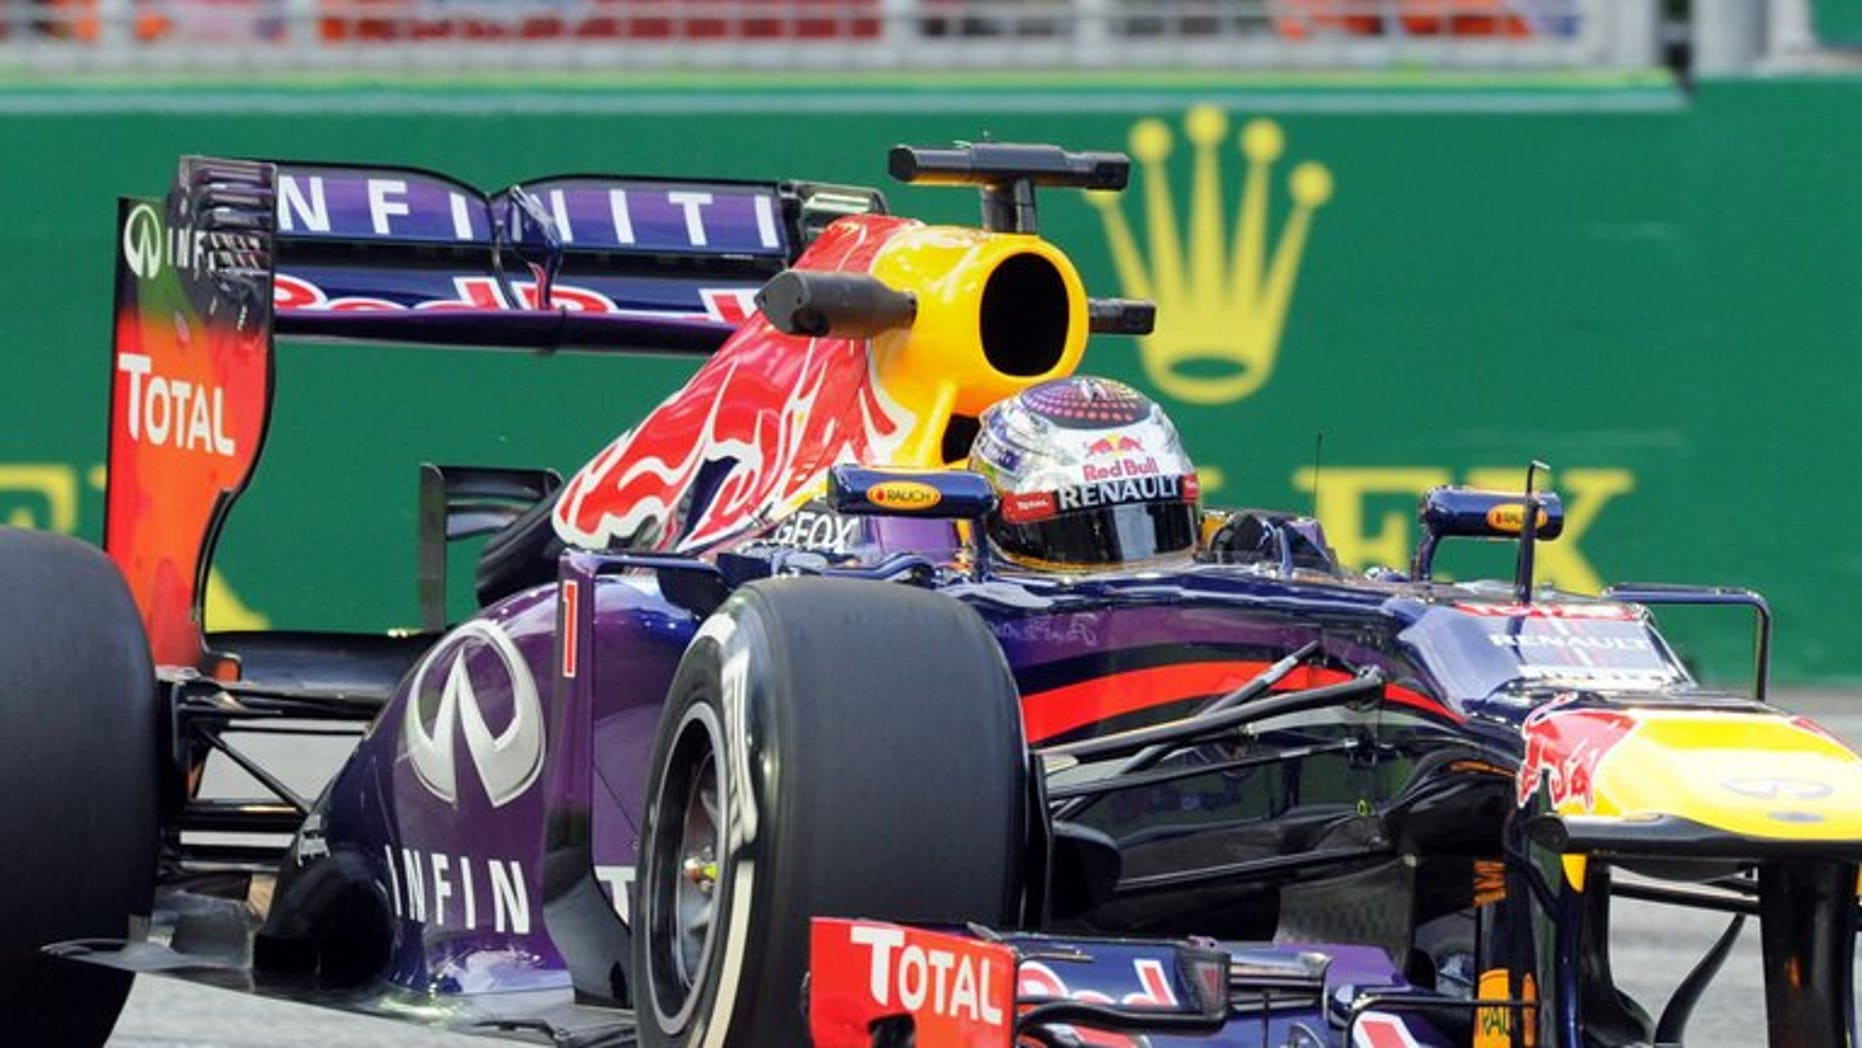 Red Bull driver Sebastian Vettel of Germany speeds around a corner during the first practice session of the Formula One Singapore Grand Prix on September 20, 2013. Vettel set a scorching pace as he dominated free practice at the Singapore Grand Prix in ominous style.